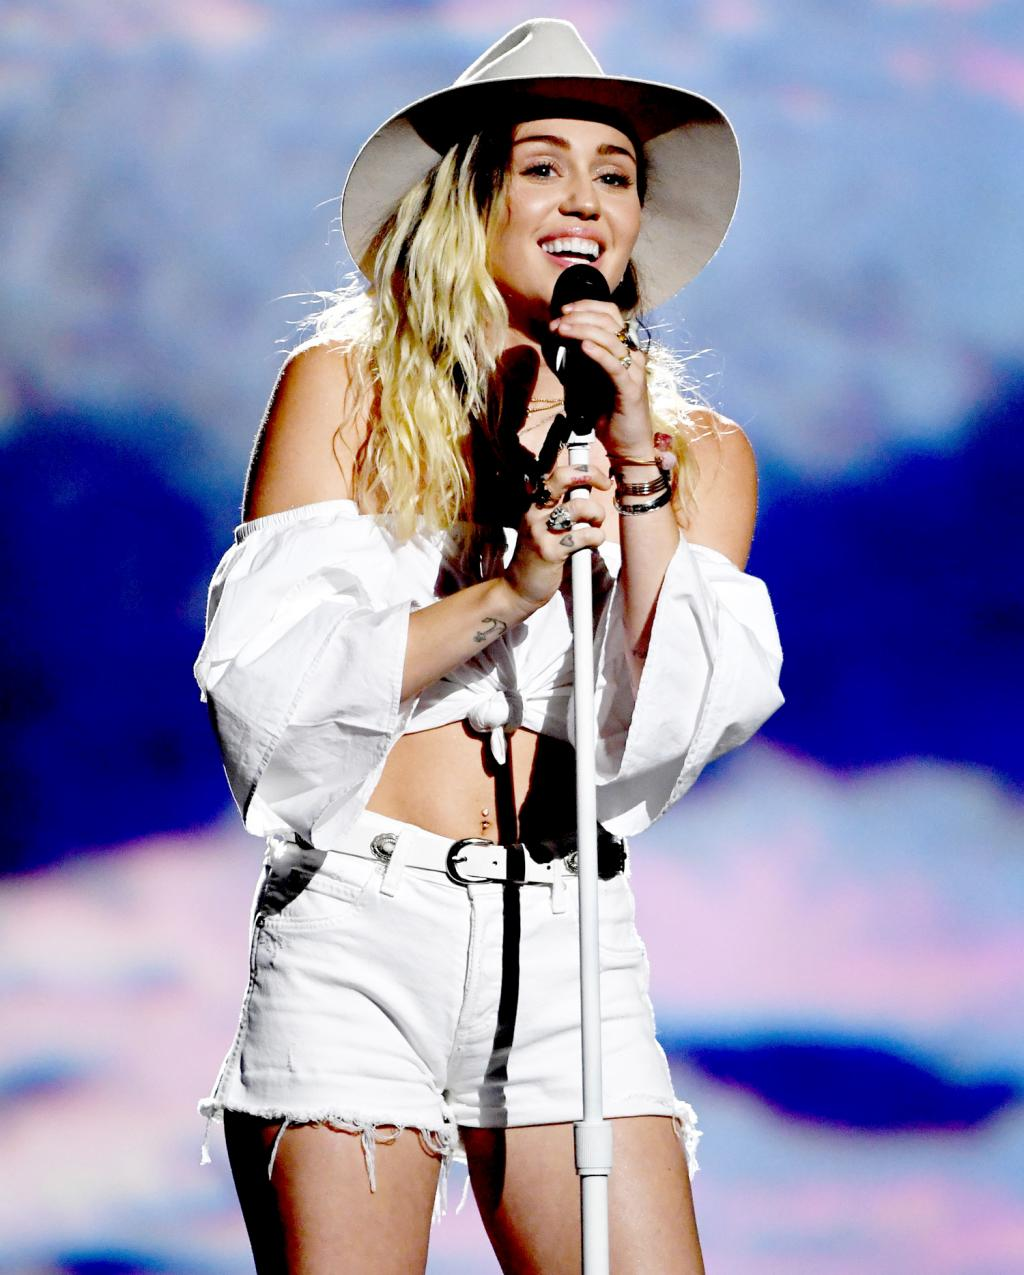 Miley Cyrus Says 'Wrecking Ball' 'Doesn't Reflect' Who She Is Now, But She's 'Grateful Every Day' for the Song